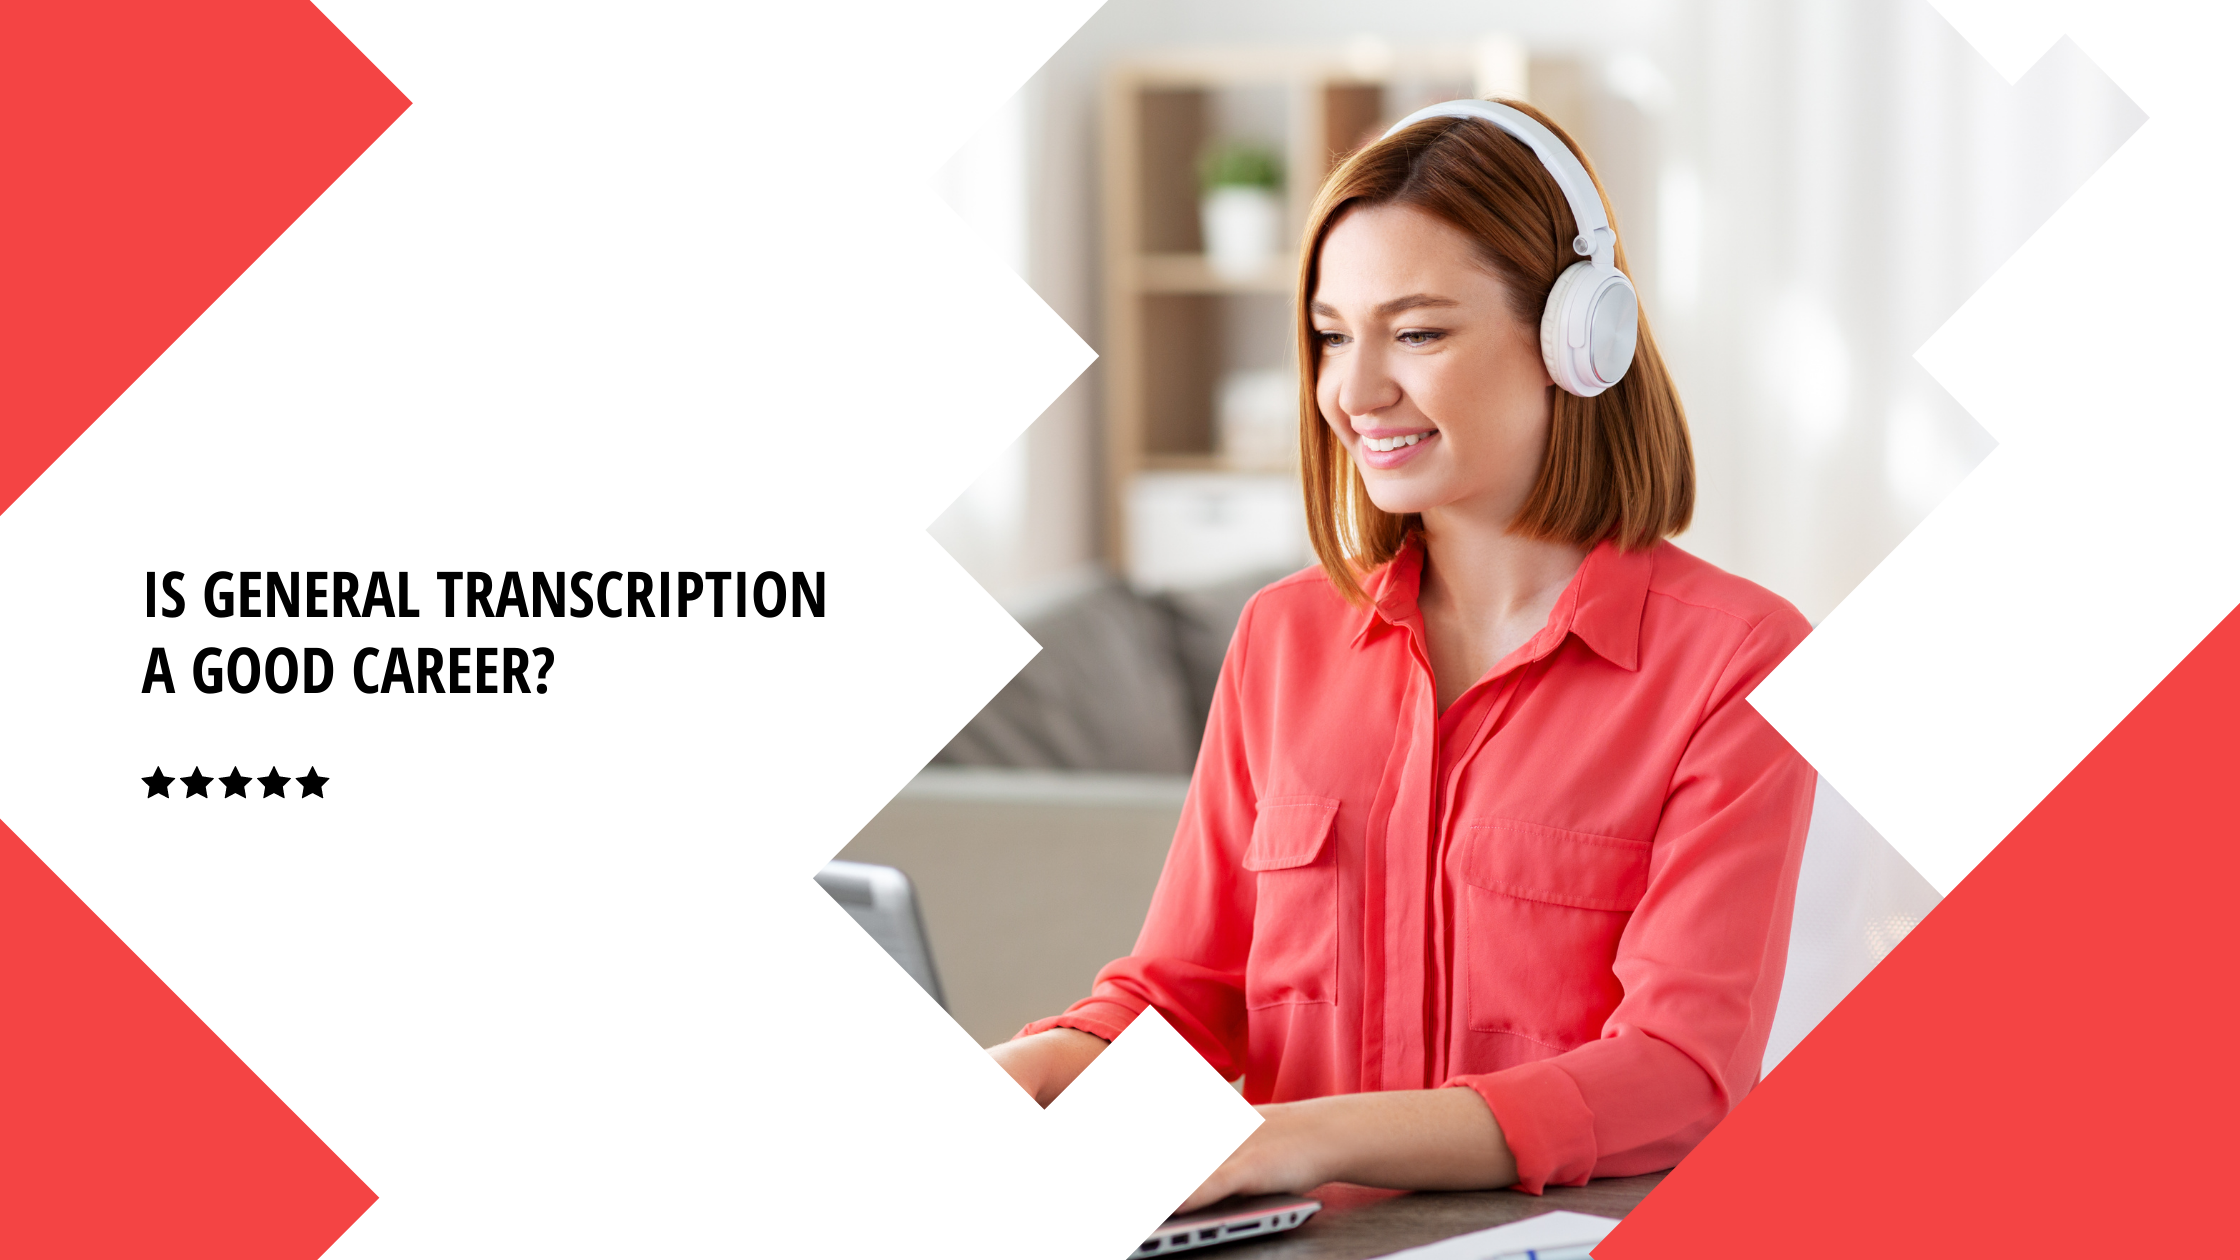 Is general transcription a good career